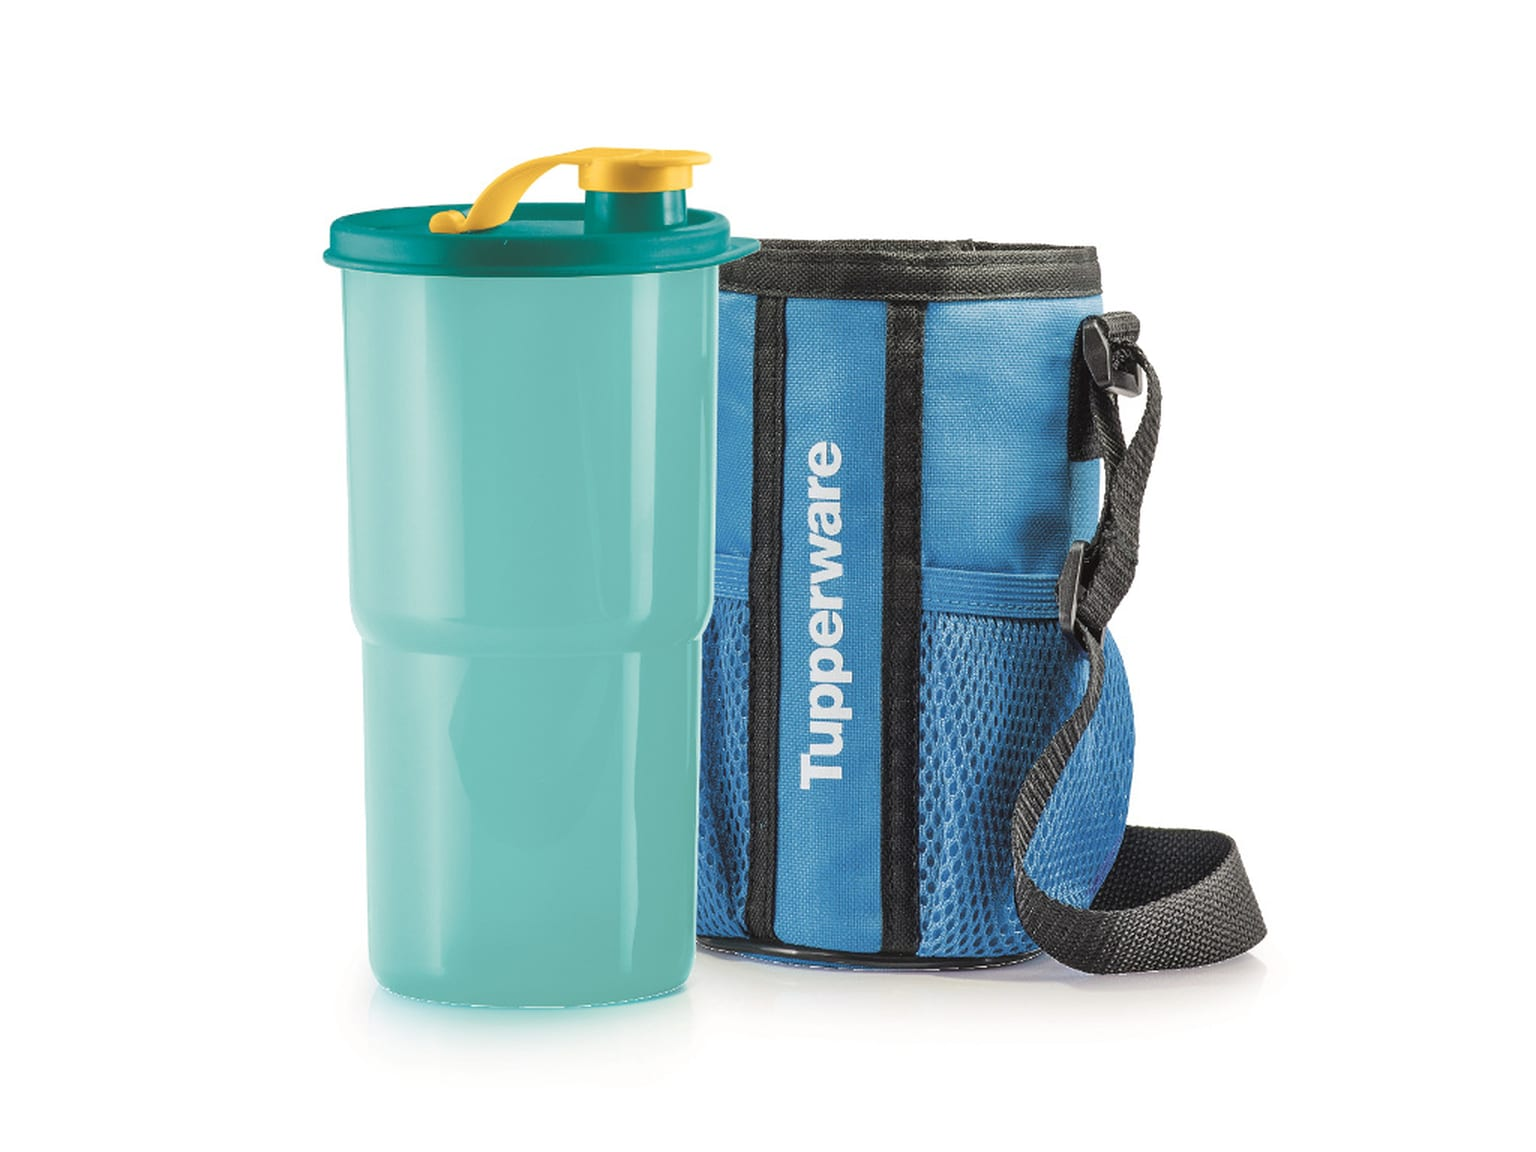 Thirstquake Tumbler with Pouch (1) 900ml